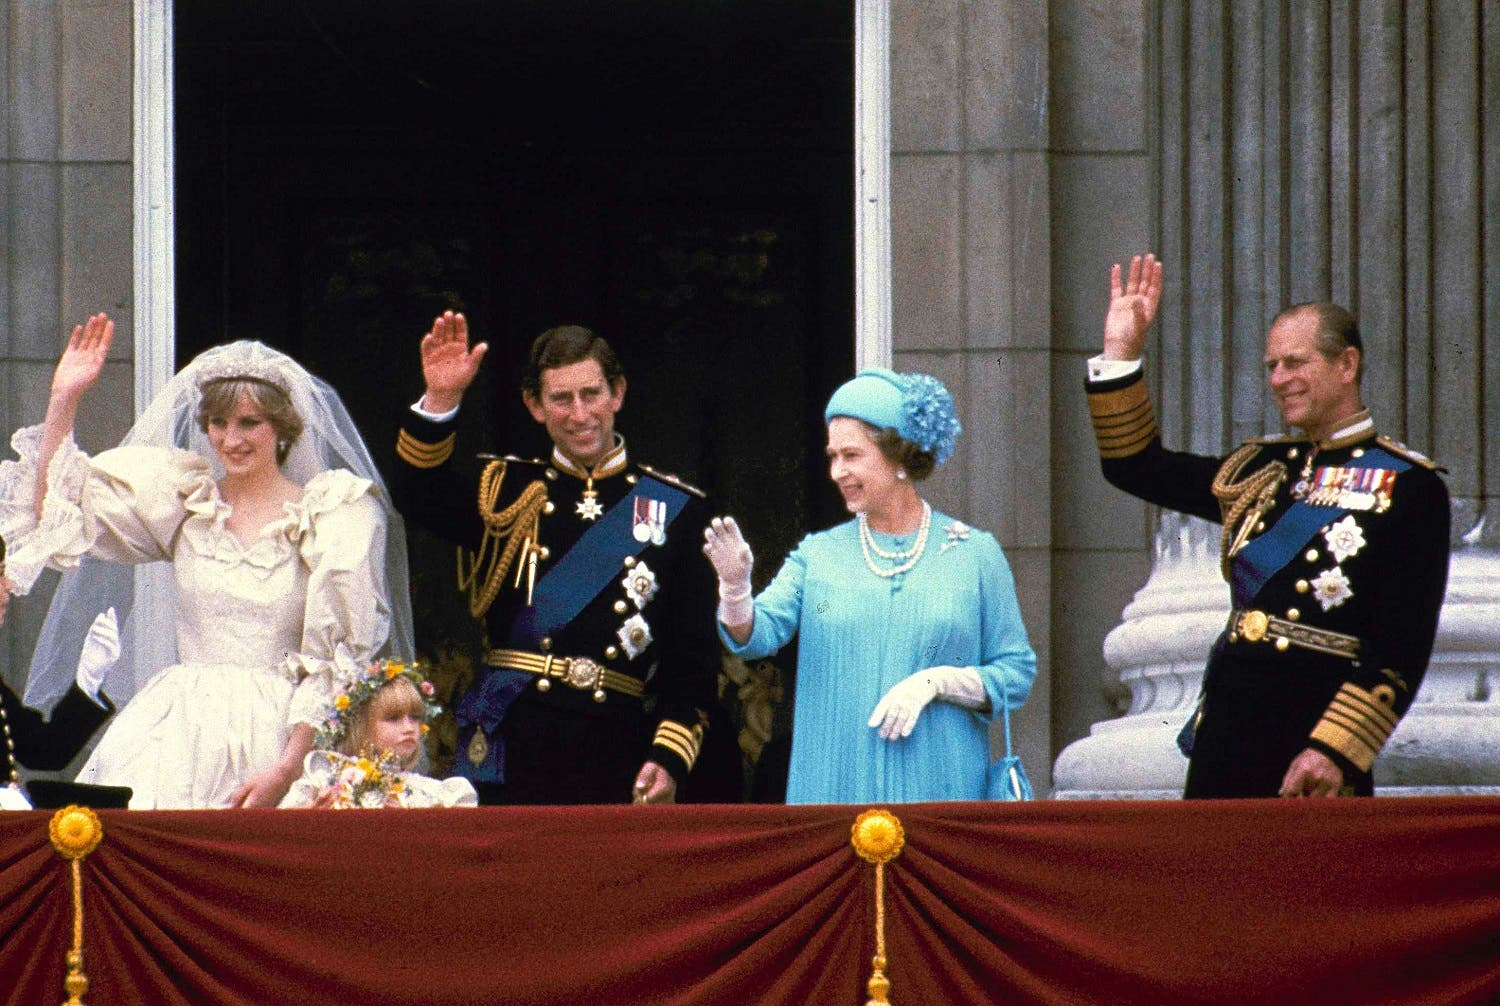 In this July 29, 1981 photo, Prince Charles and his bride Diana, Princess of Wales, and his parents, Queen Elizabeth II and Prince Phillip, wave from the balcony of Buckingham Palace in London after their marriage at St. Paul's Catheral (Photo: AP)